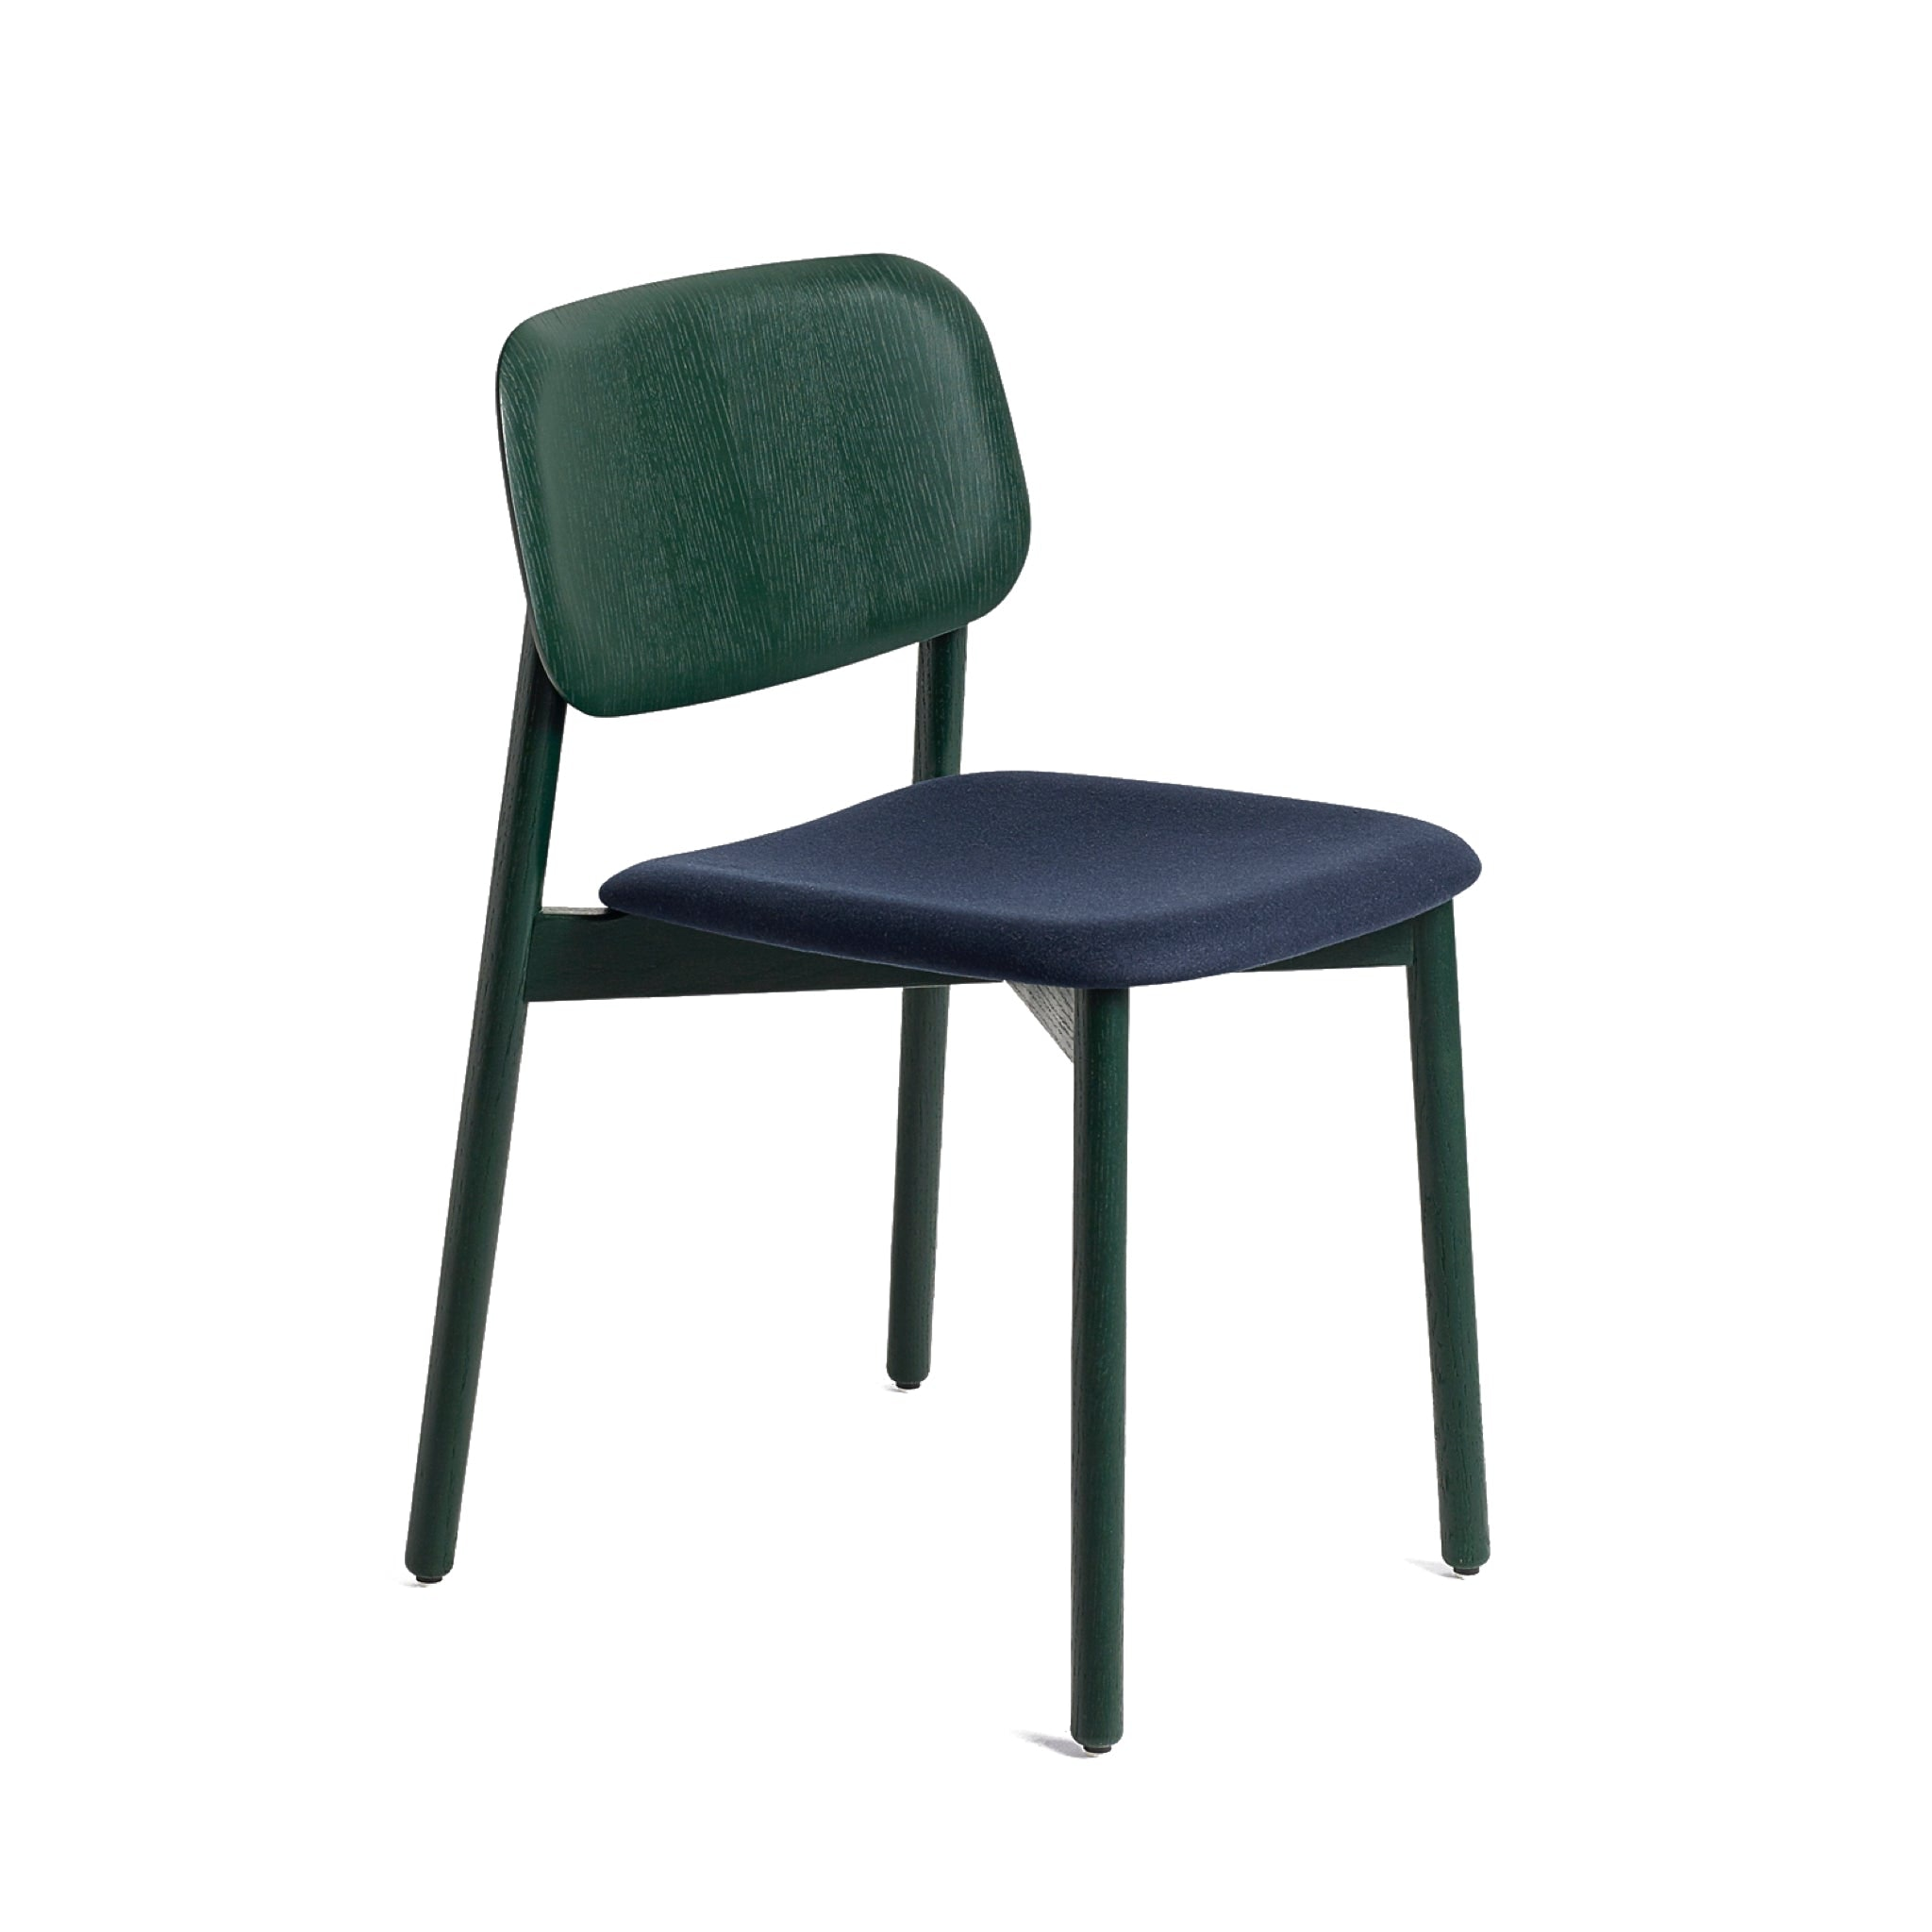 Soft Edge 12 Chair Upholstered by Hay